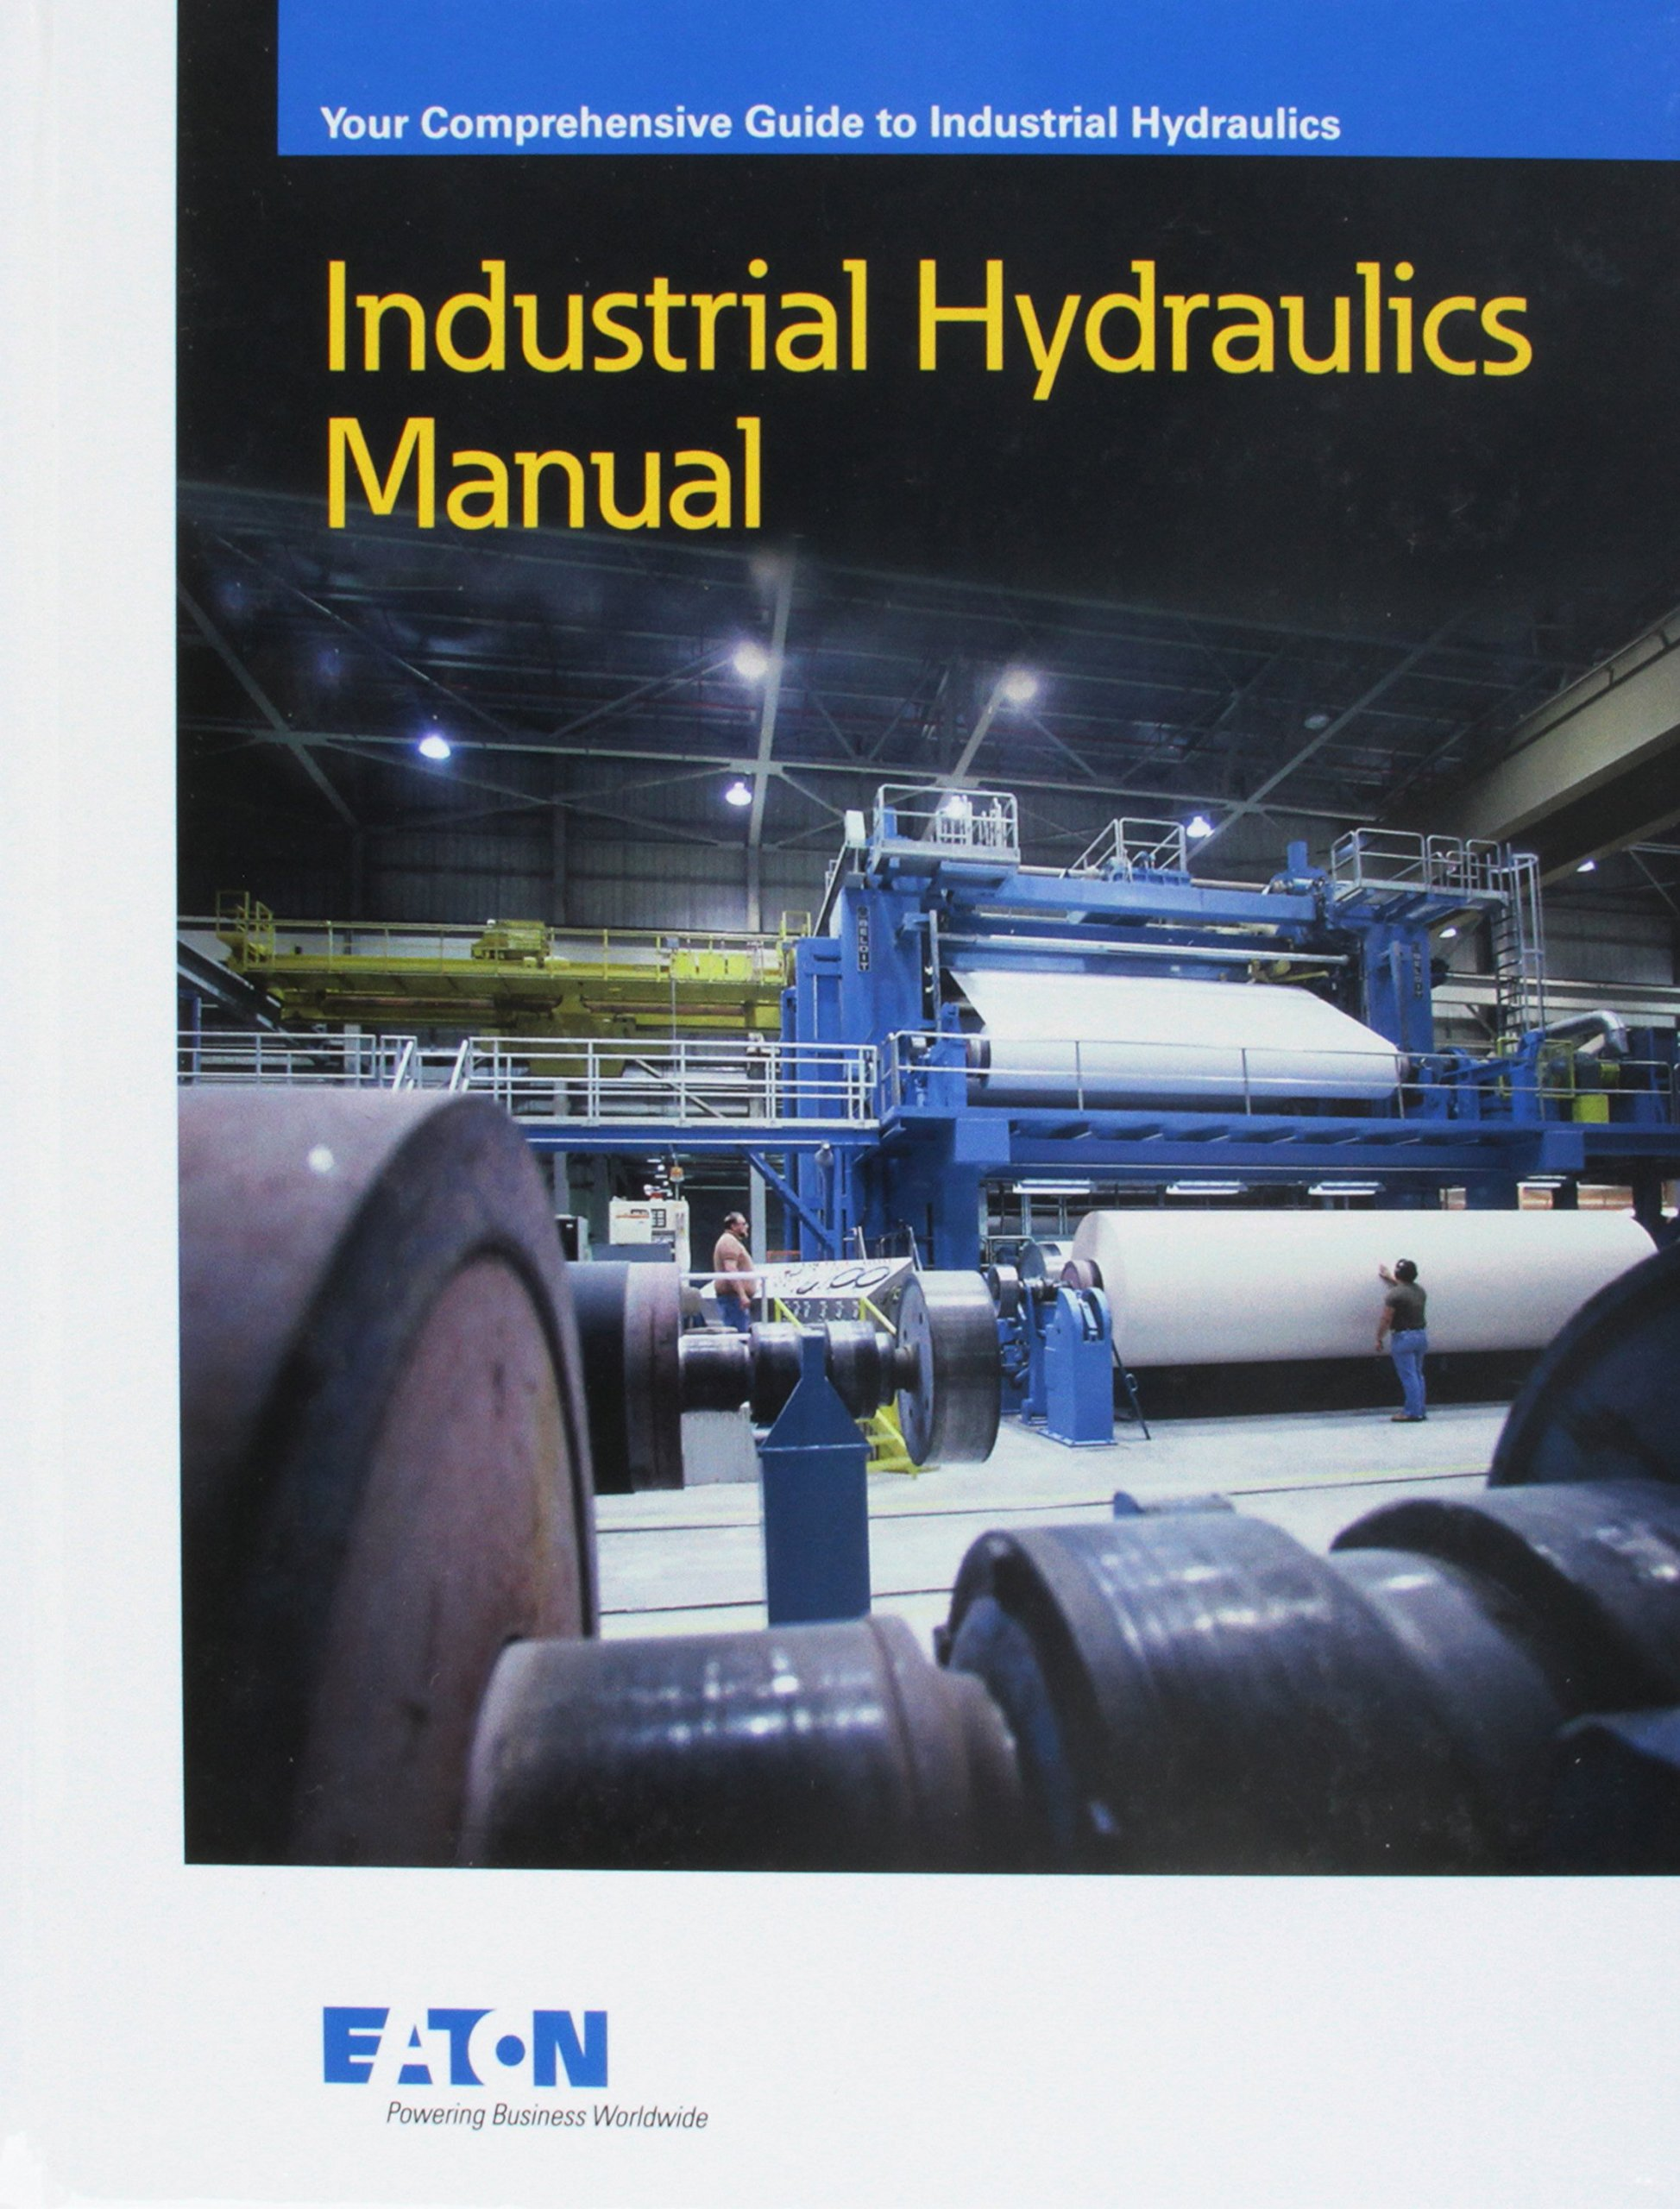 Industrial Hydraulics Manual 6th Edition 1st Printing: Eaton Hydraulics  Training Services: 0978069253210: Amazon.com: Books